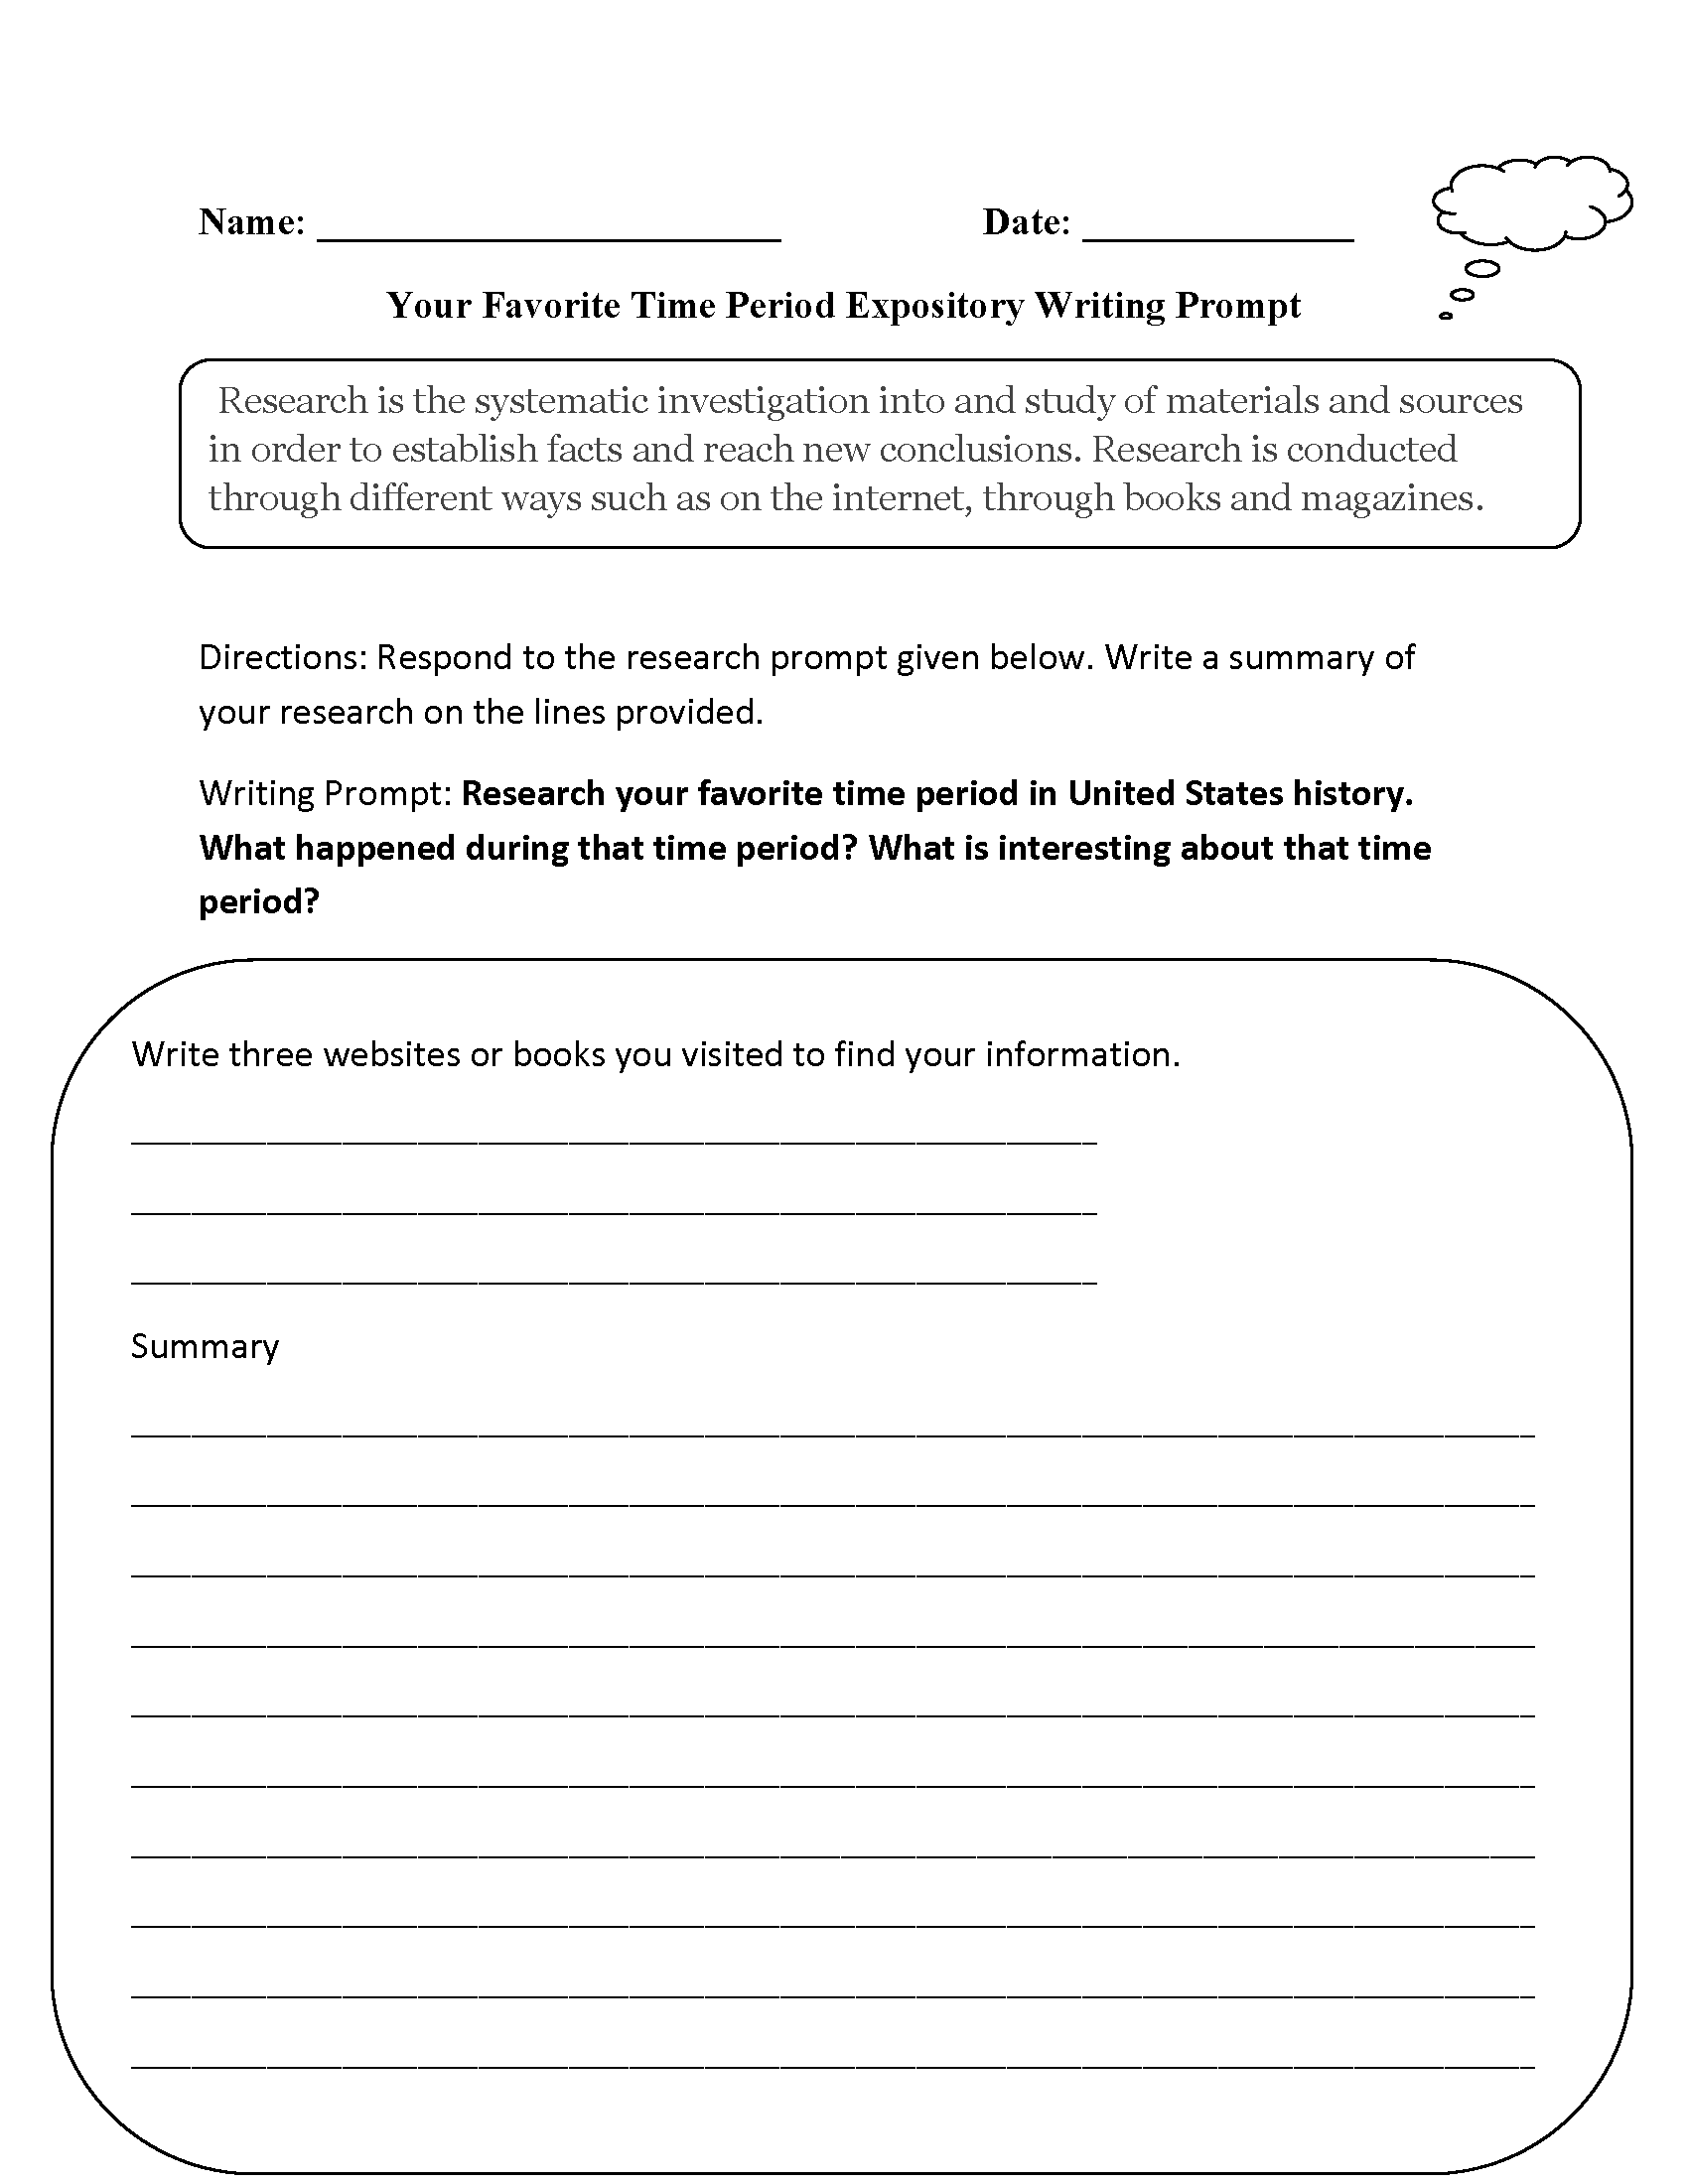 inform essay informative essay prompts informative essay writing  informative essay prompts informative essay writing prompts ideas writing prompts worksheets informative and expository writing expository